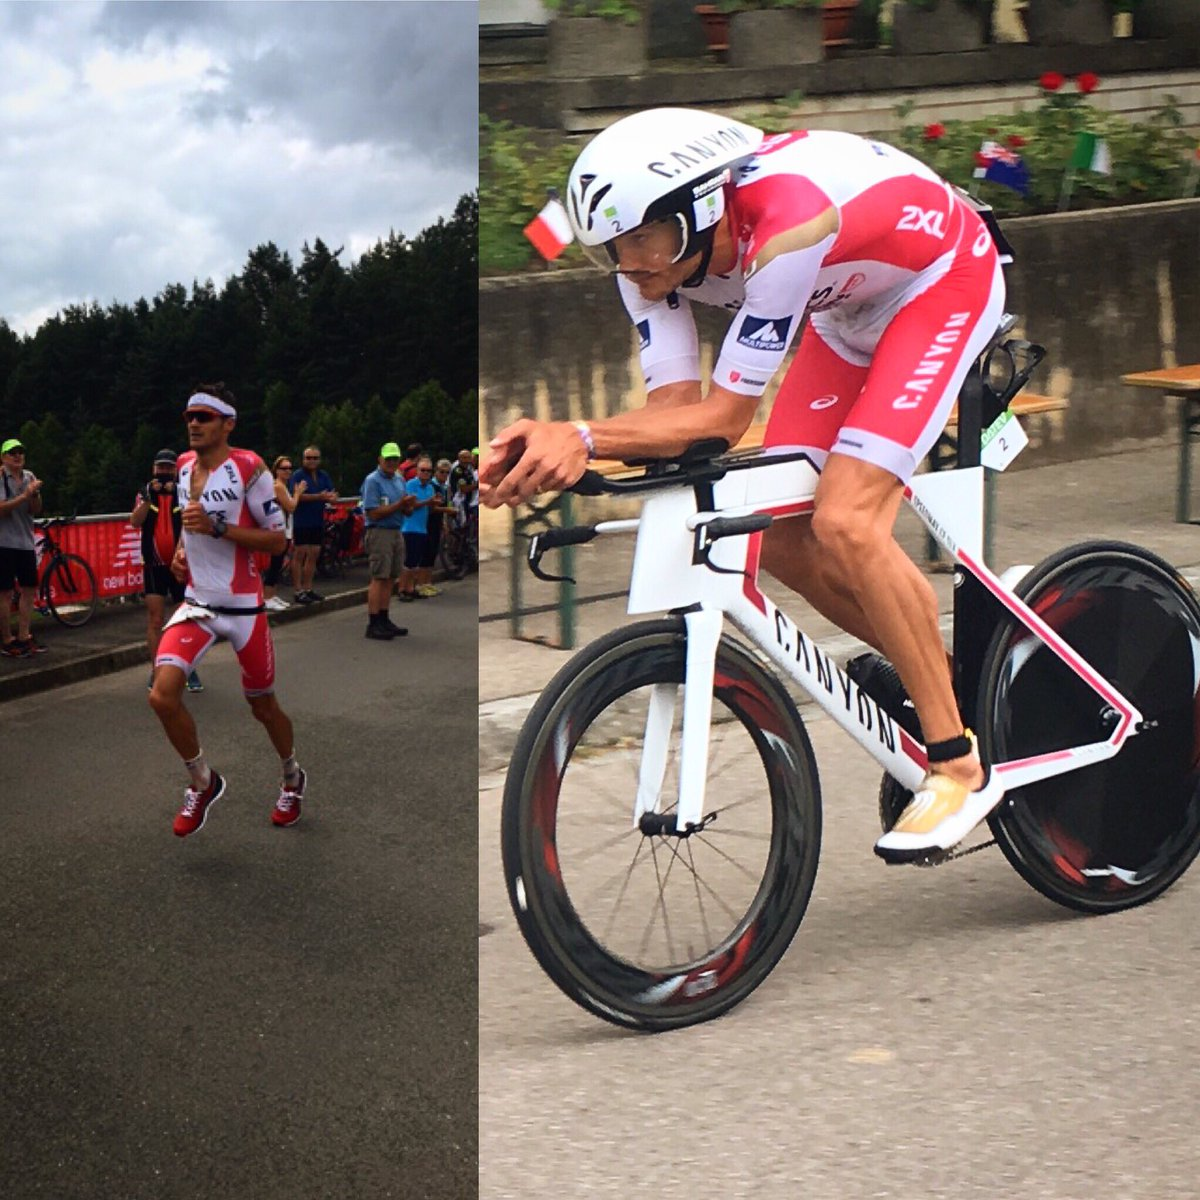 Masterpiece performance. Massive congrats to the new World record holder @janfrodeno 7:35:39 hrs #ChallengeRoth https://t.co/O84nmBMdOC